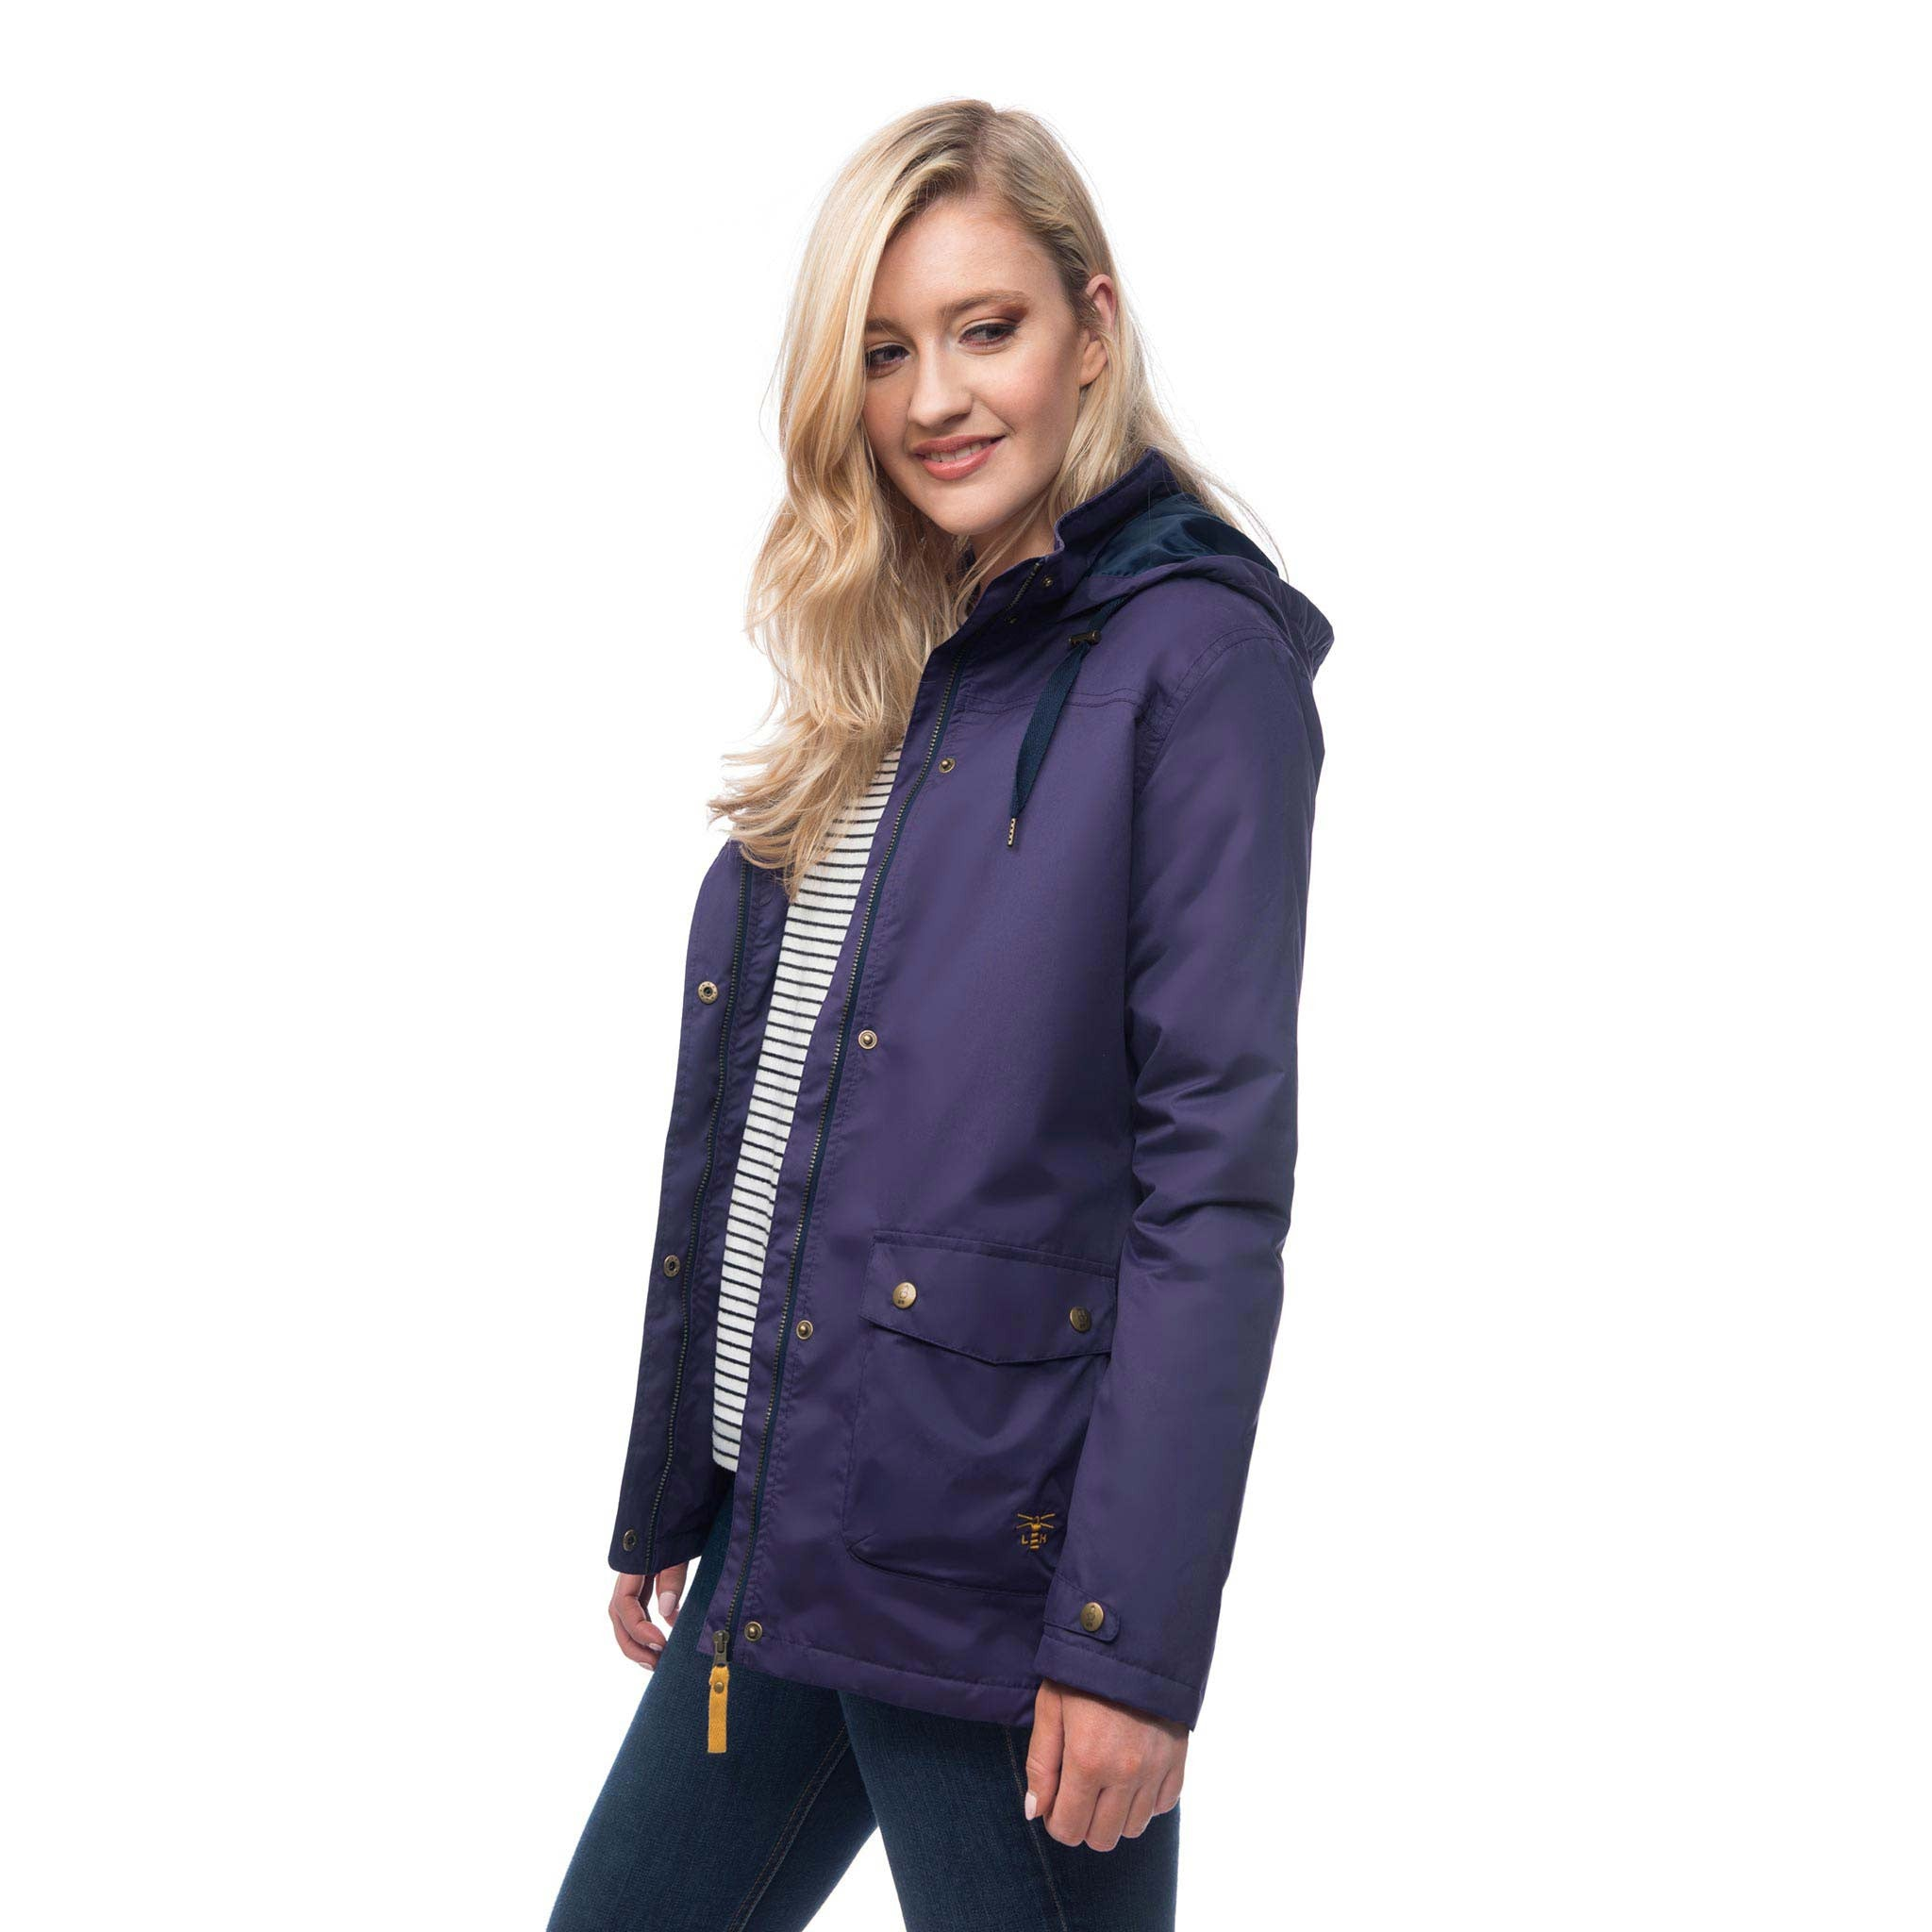 Lighthouse Alyssa Womens Waterproof Hooded Jacket in Purple. Unzipped and un-buttoned. Hood down.